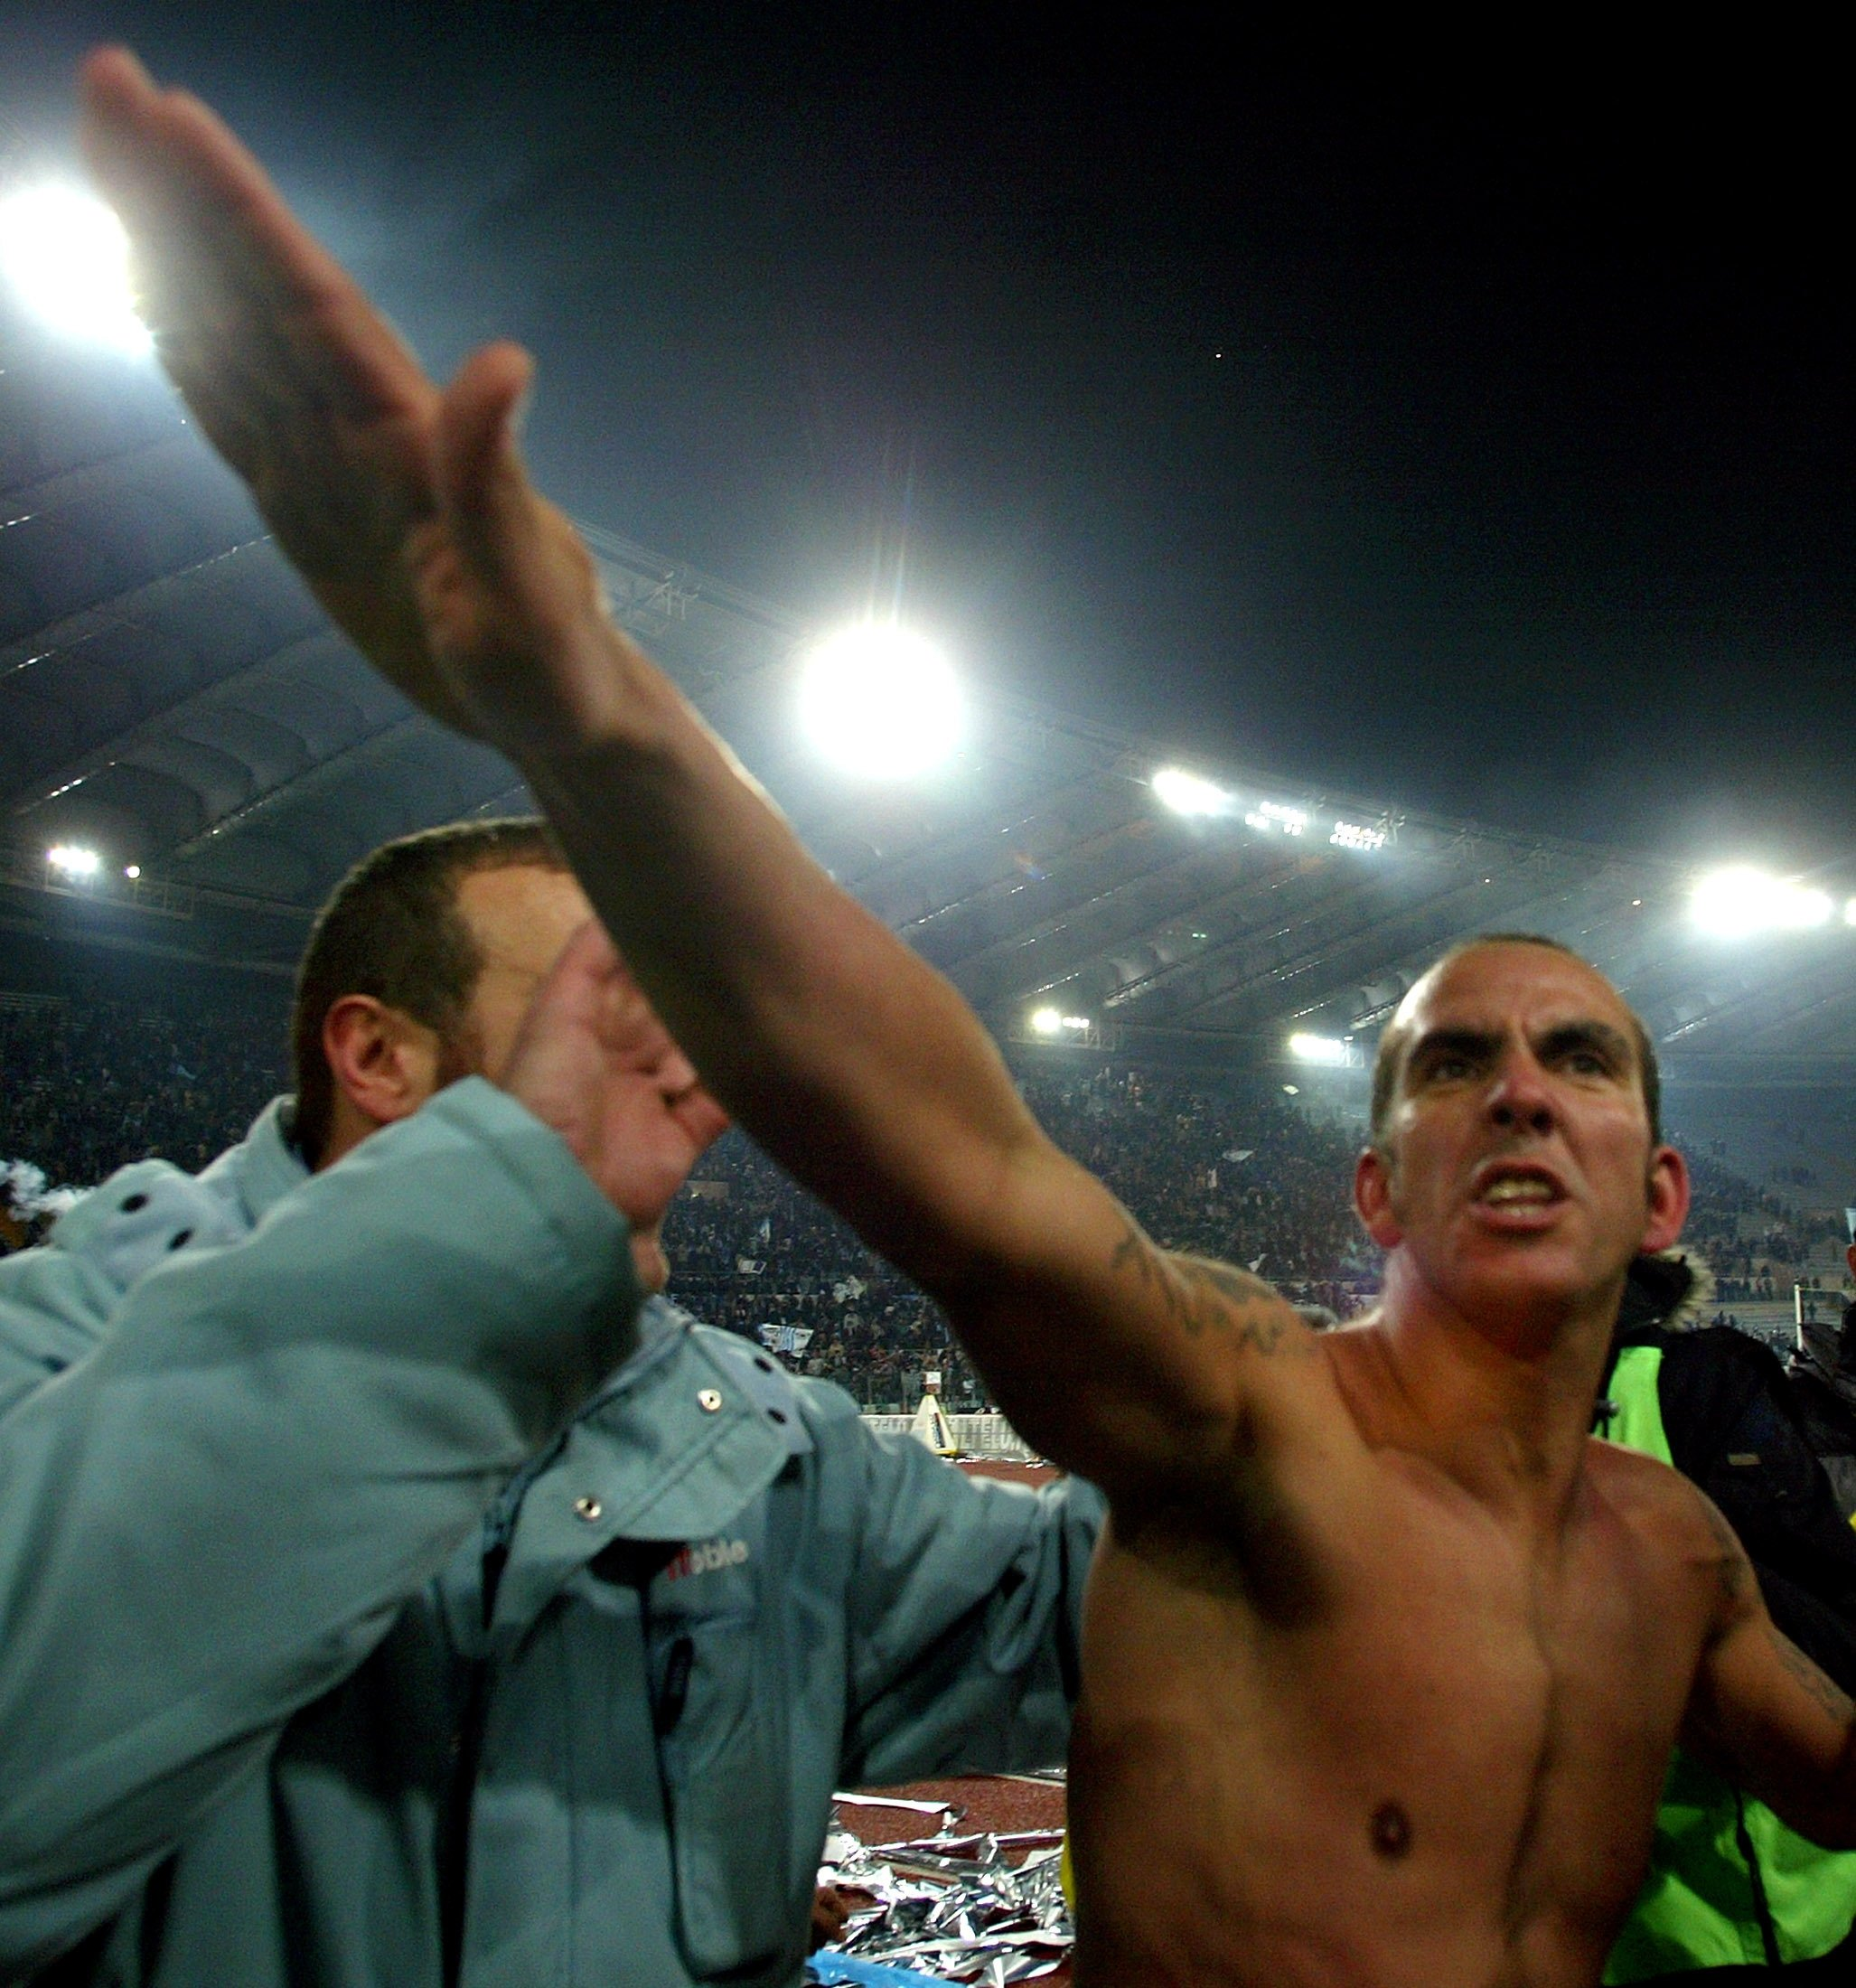 Lazio's Paolo Di Canio celebrates after winning against A.S. Roma in a Serie A clash at Olympic Stadium in Rome, Italy, Oct. 23, 2005. (Reuters Photo)